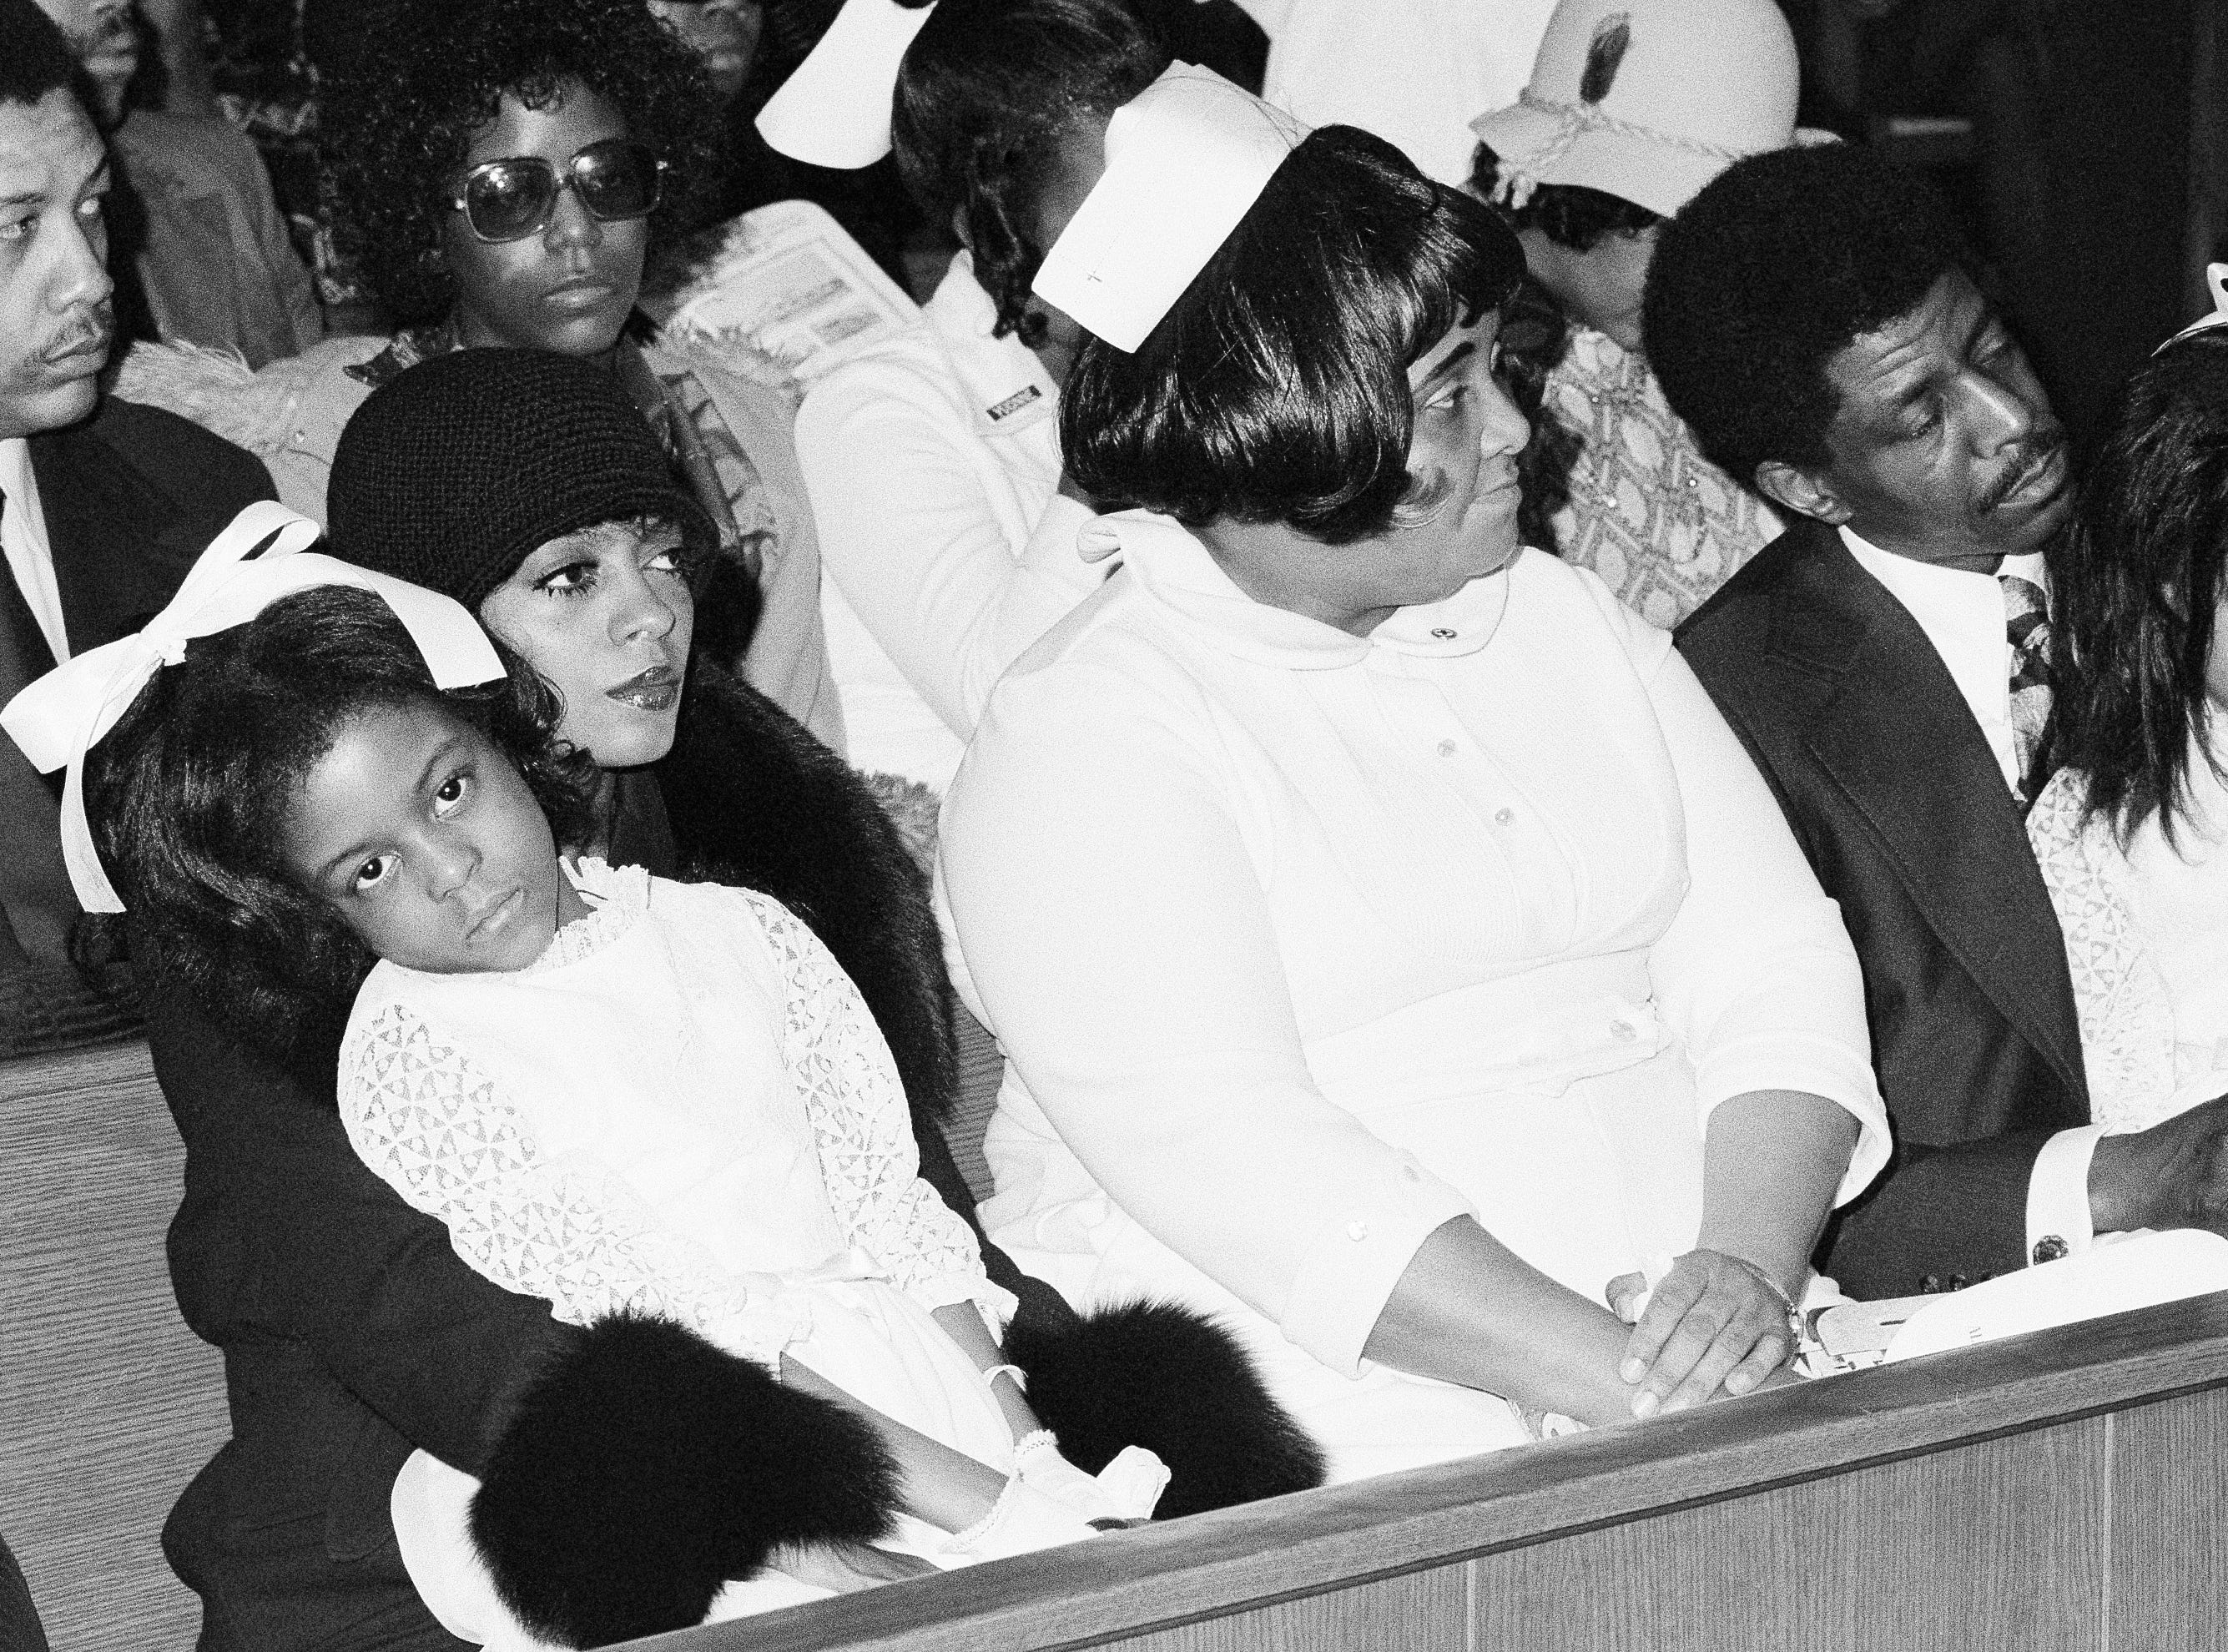 On Feb. 22, 1976, Florence Ballard died of a heart attack at the age of 32. During the funeral at Detroit's New Bethel Baptist Church, Diana Ross holds Lisa Chapman, 3, daughter of Florence Ballard. At far right is Ballard's husband, Tommy Chapman, and daughter Michelle Chapman, 7.